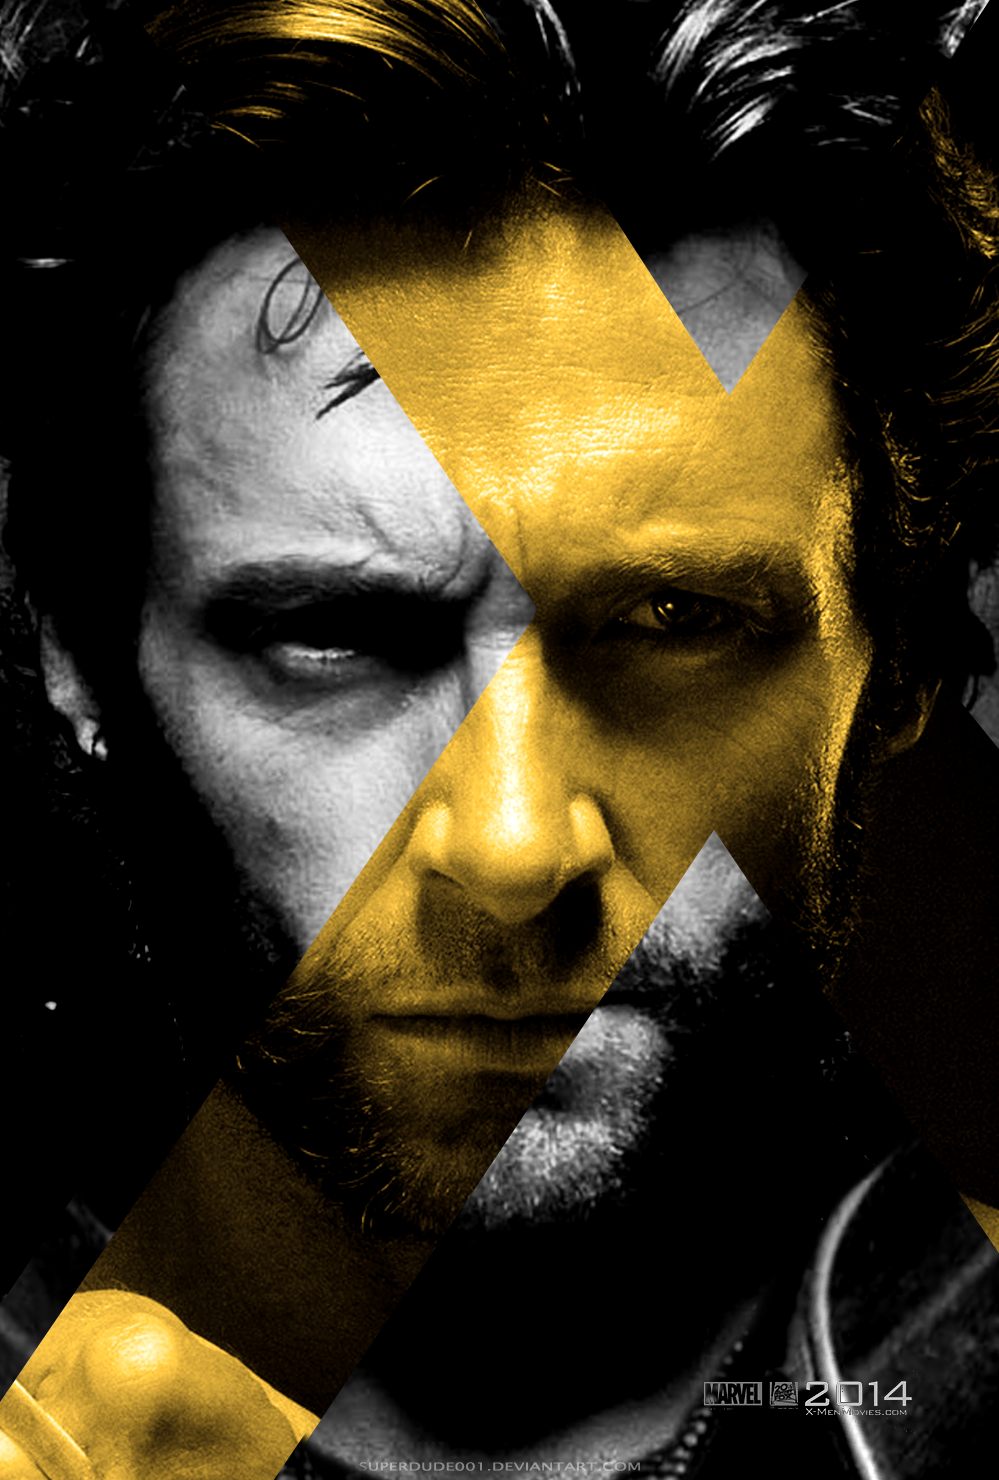 X Men Days Of Future Past Wolverine By Superdude001 On Deviantart